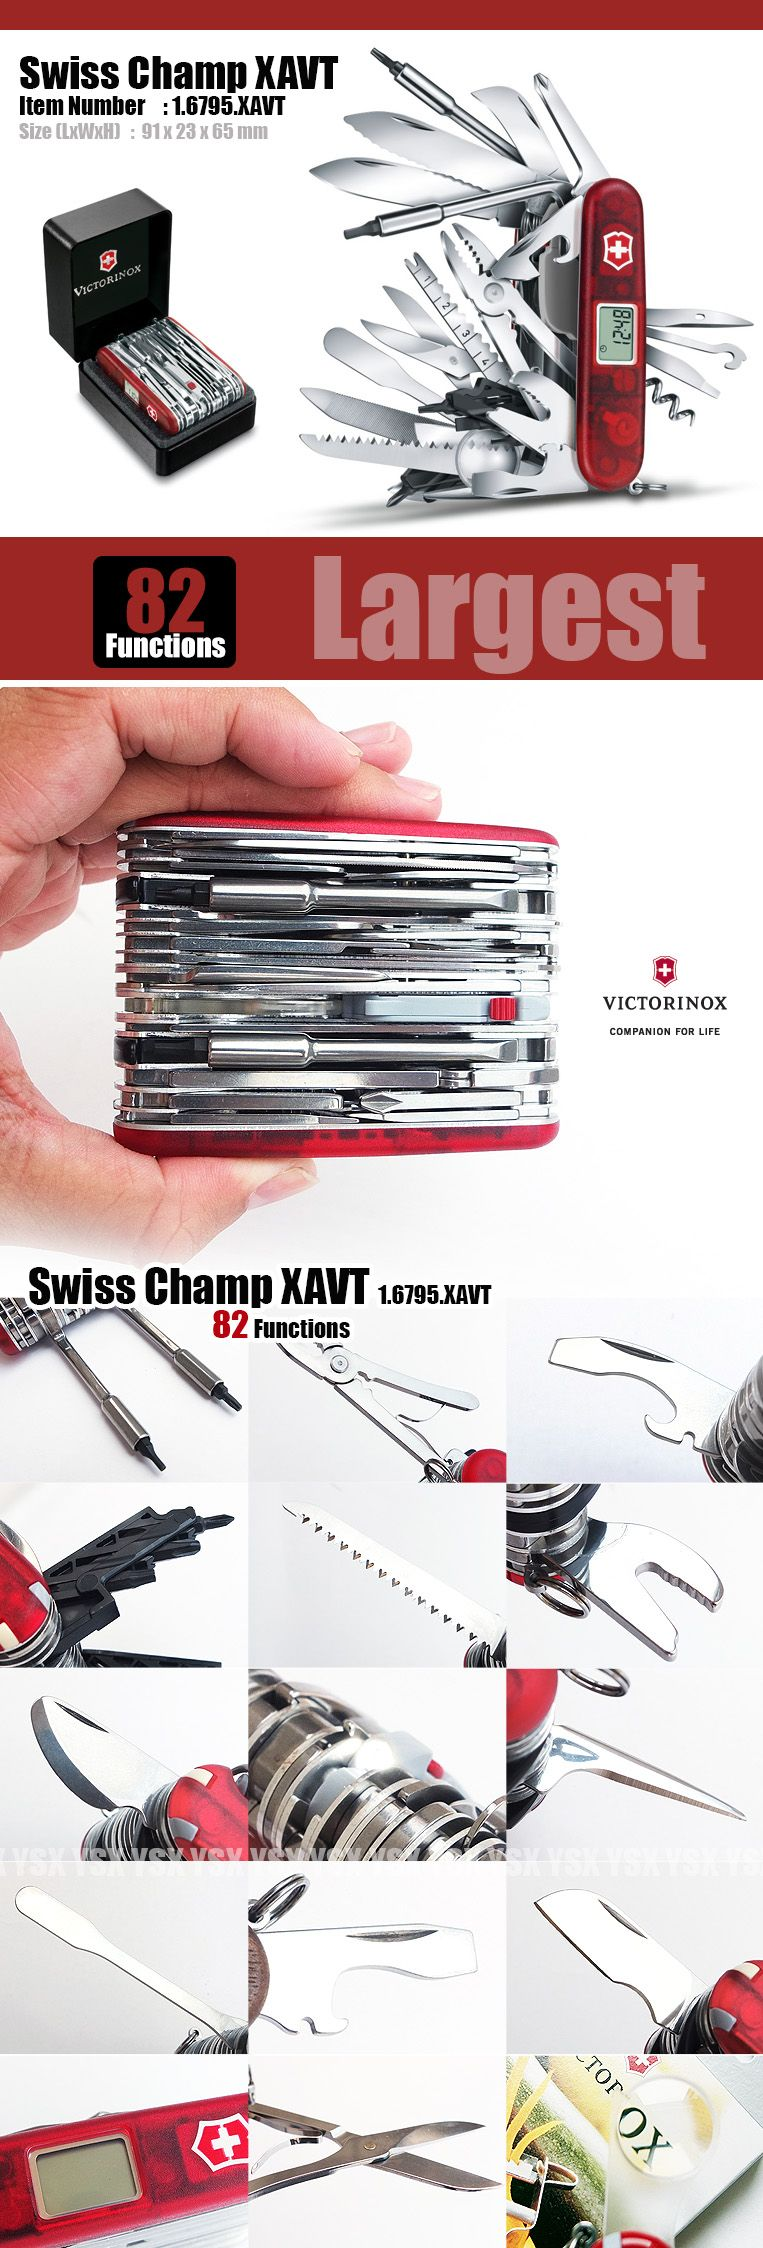 Victorinox Swiss Army Knife 91mm Swiss Champ Xavt 82